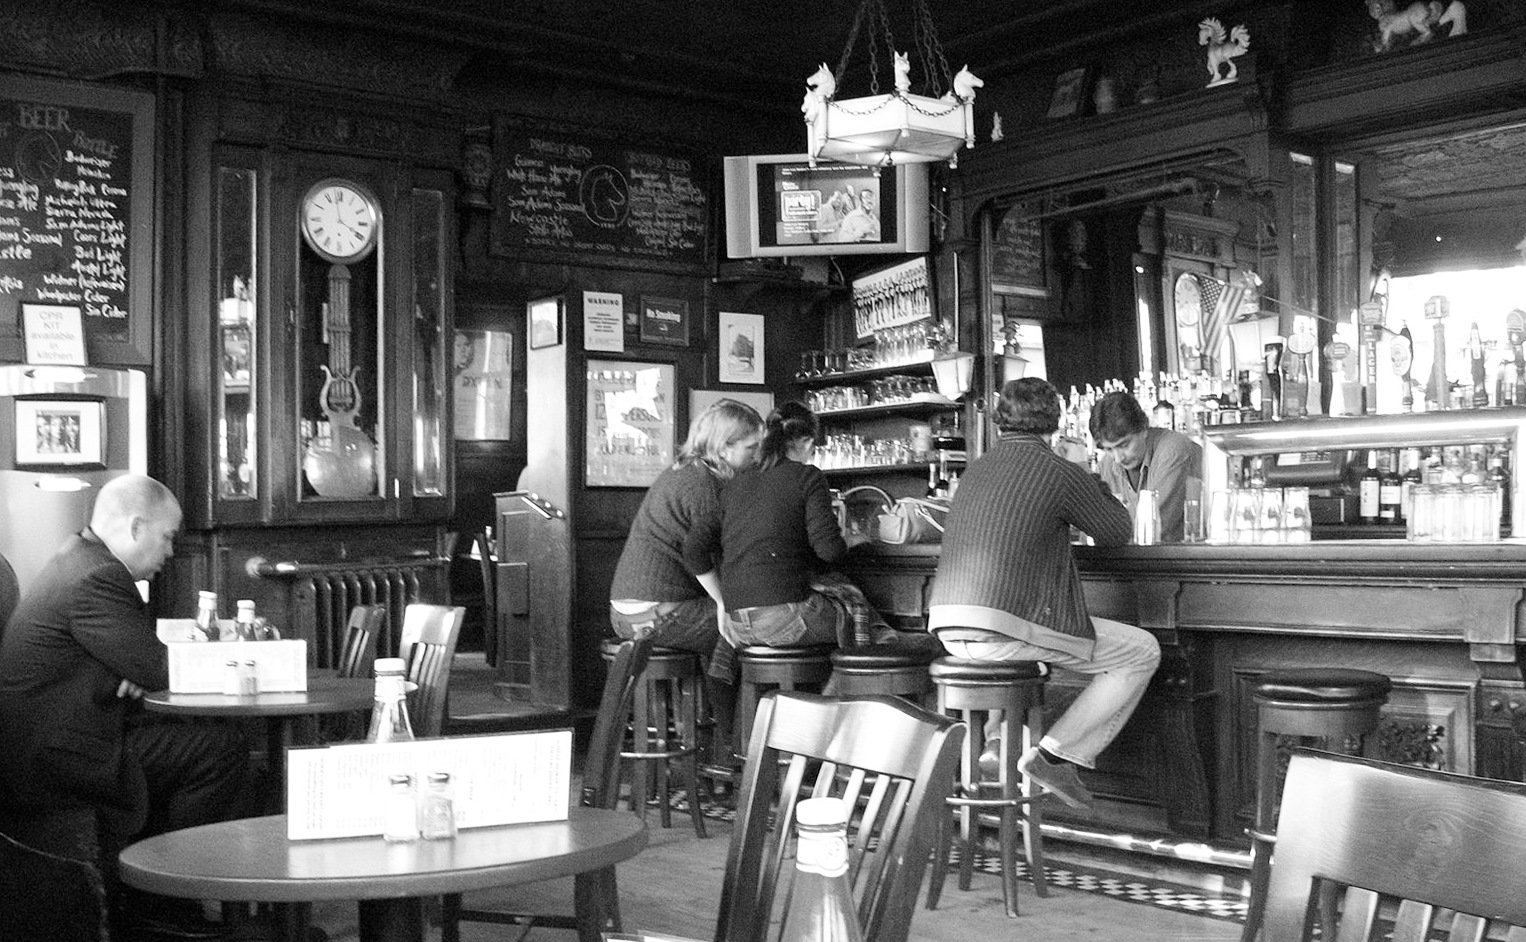 Cracking open the stories of NYC's most historic bars   6sqft